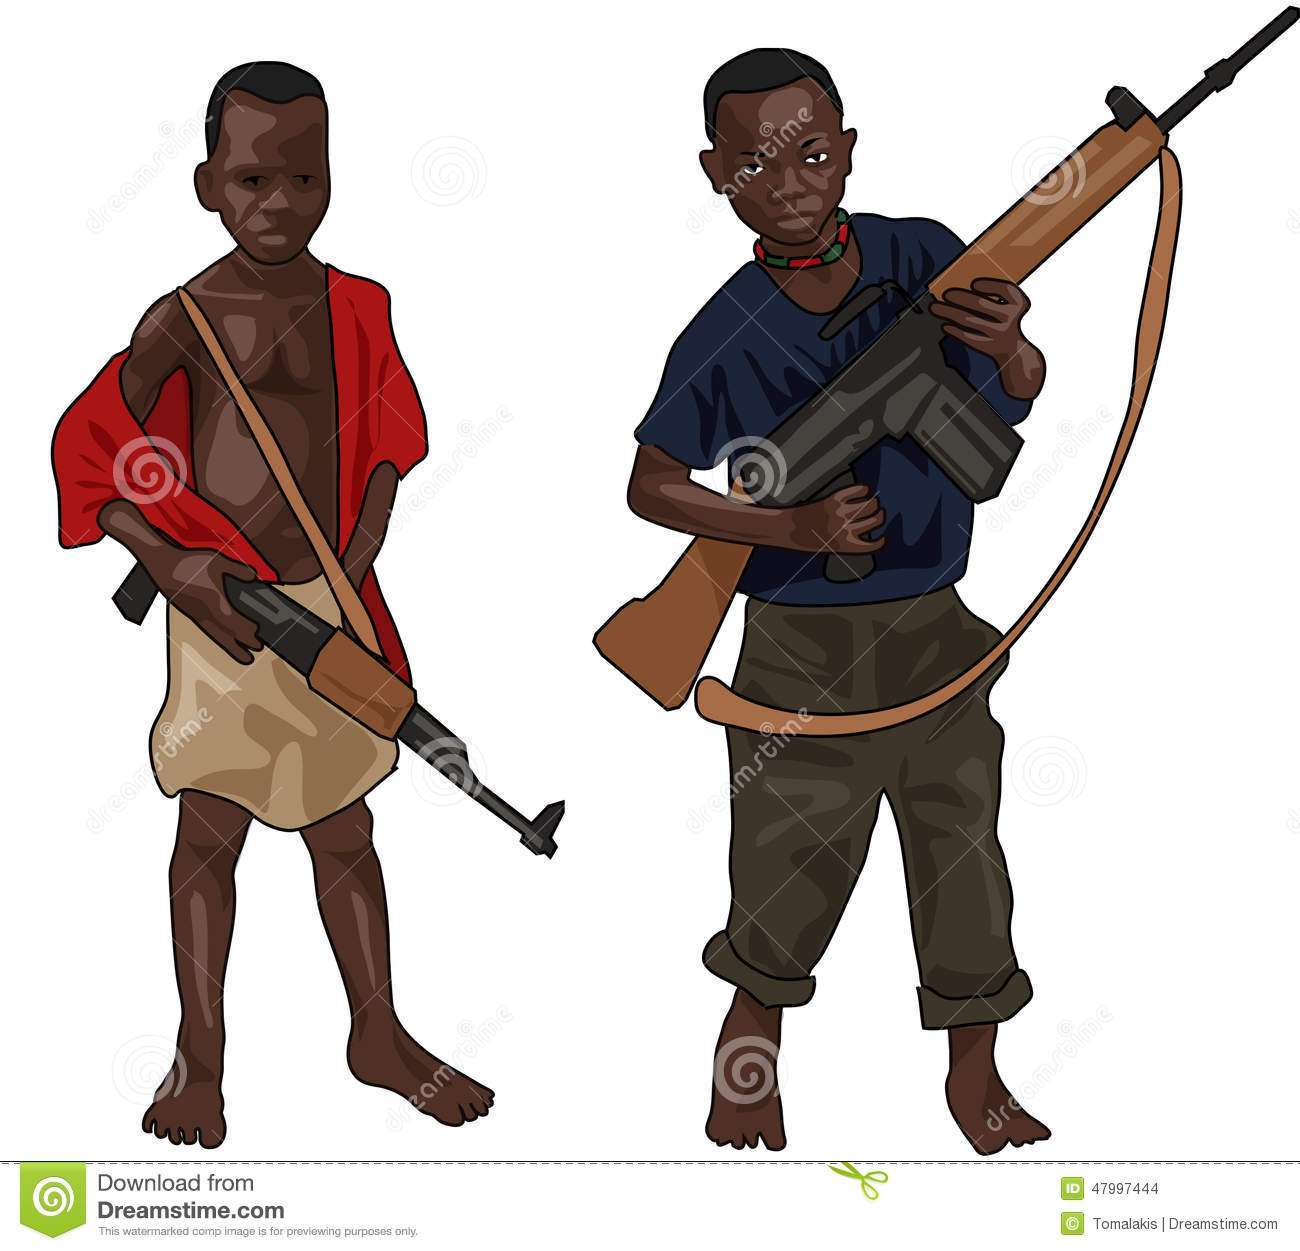 Children soldiers in africa essay